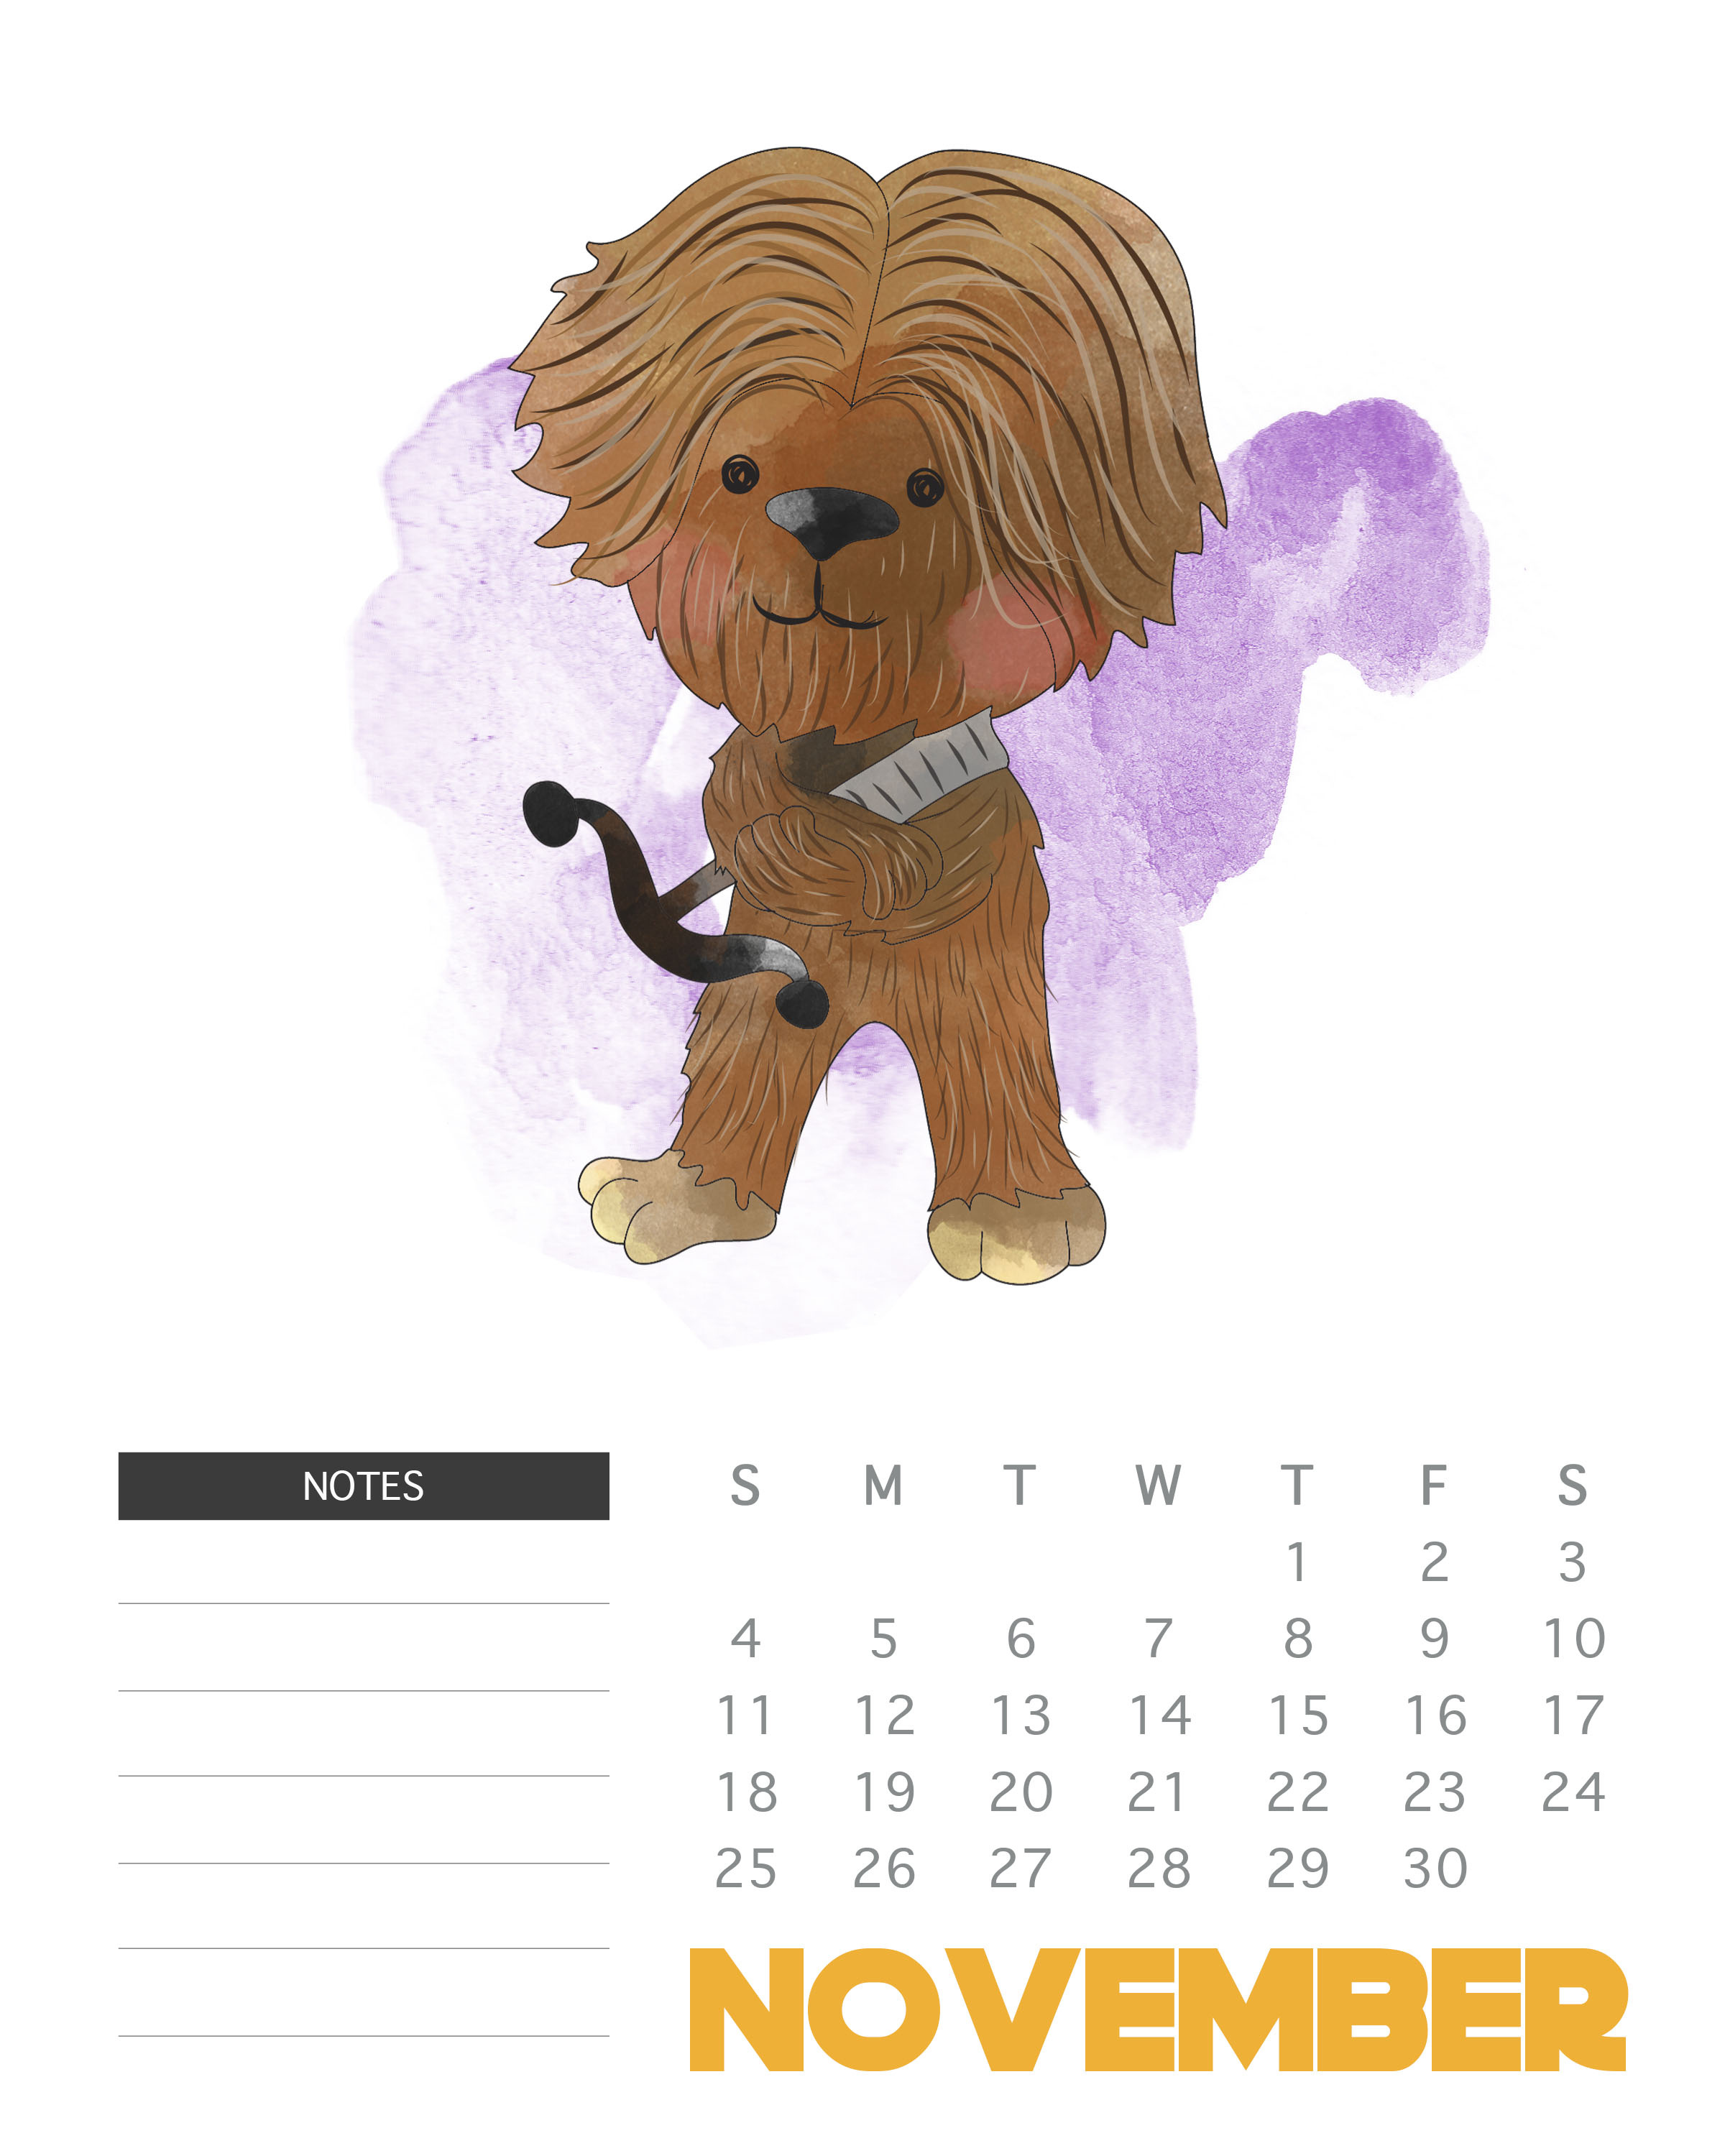 2018 Star Wars Monthly Calendar | Latest Calendar within Star Wars Calendar Printable